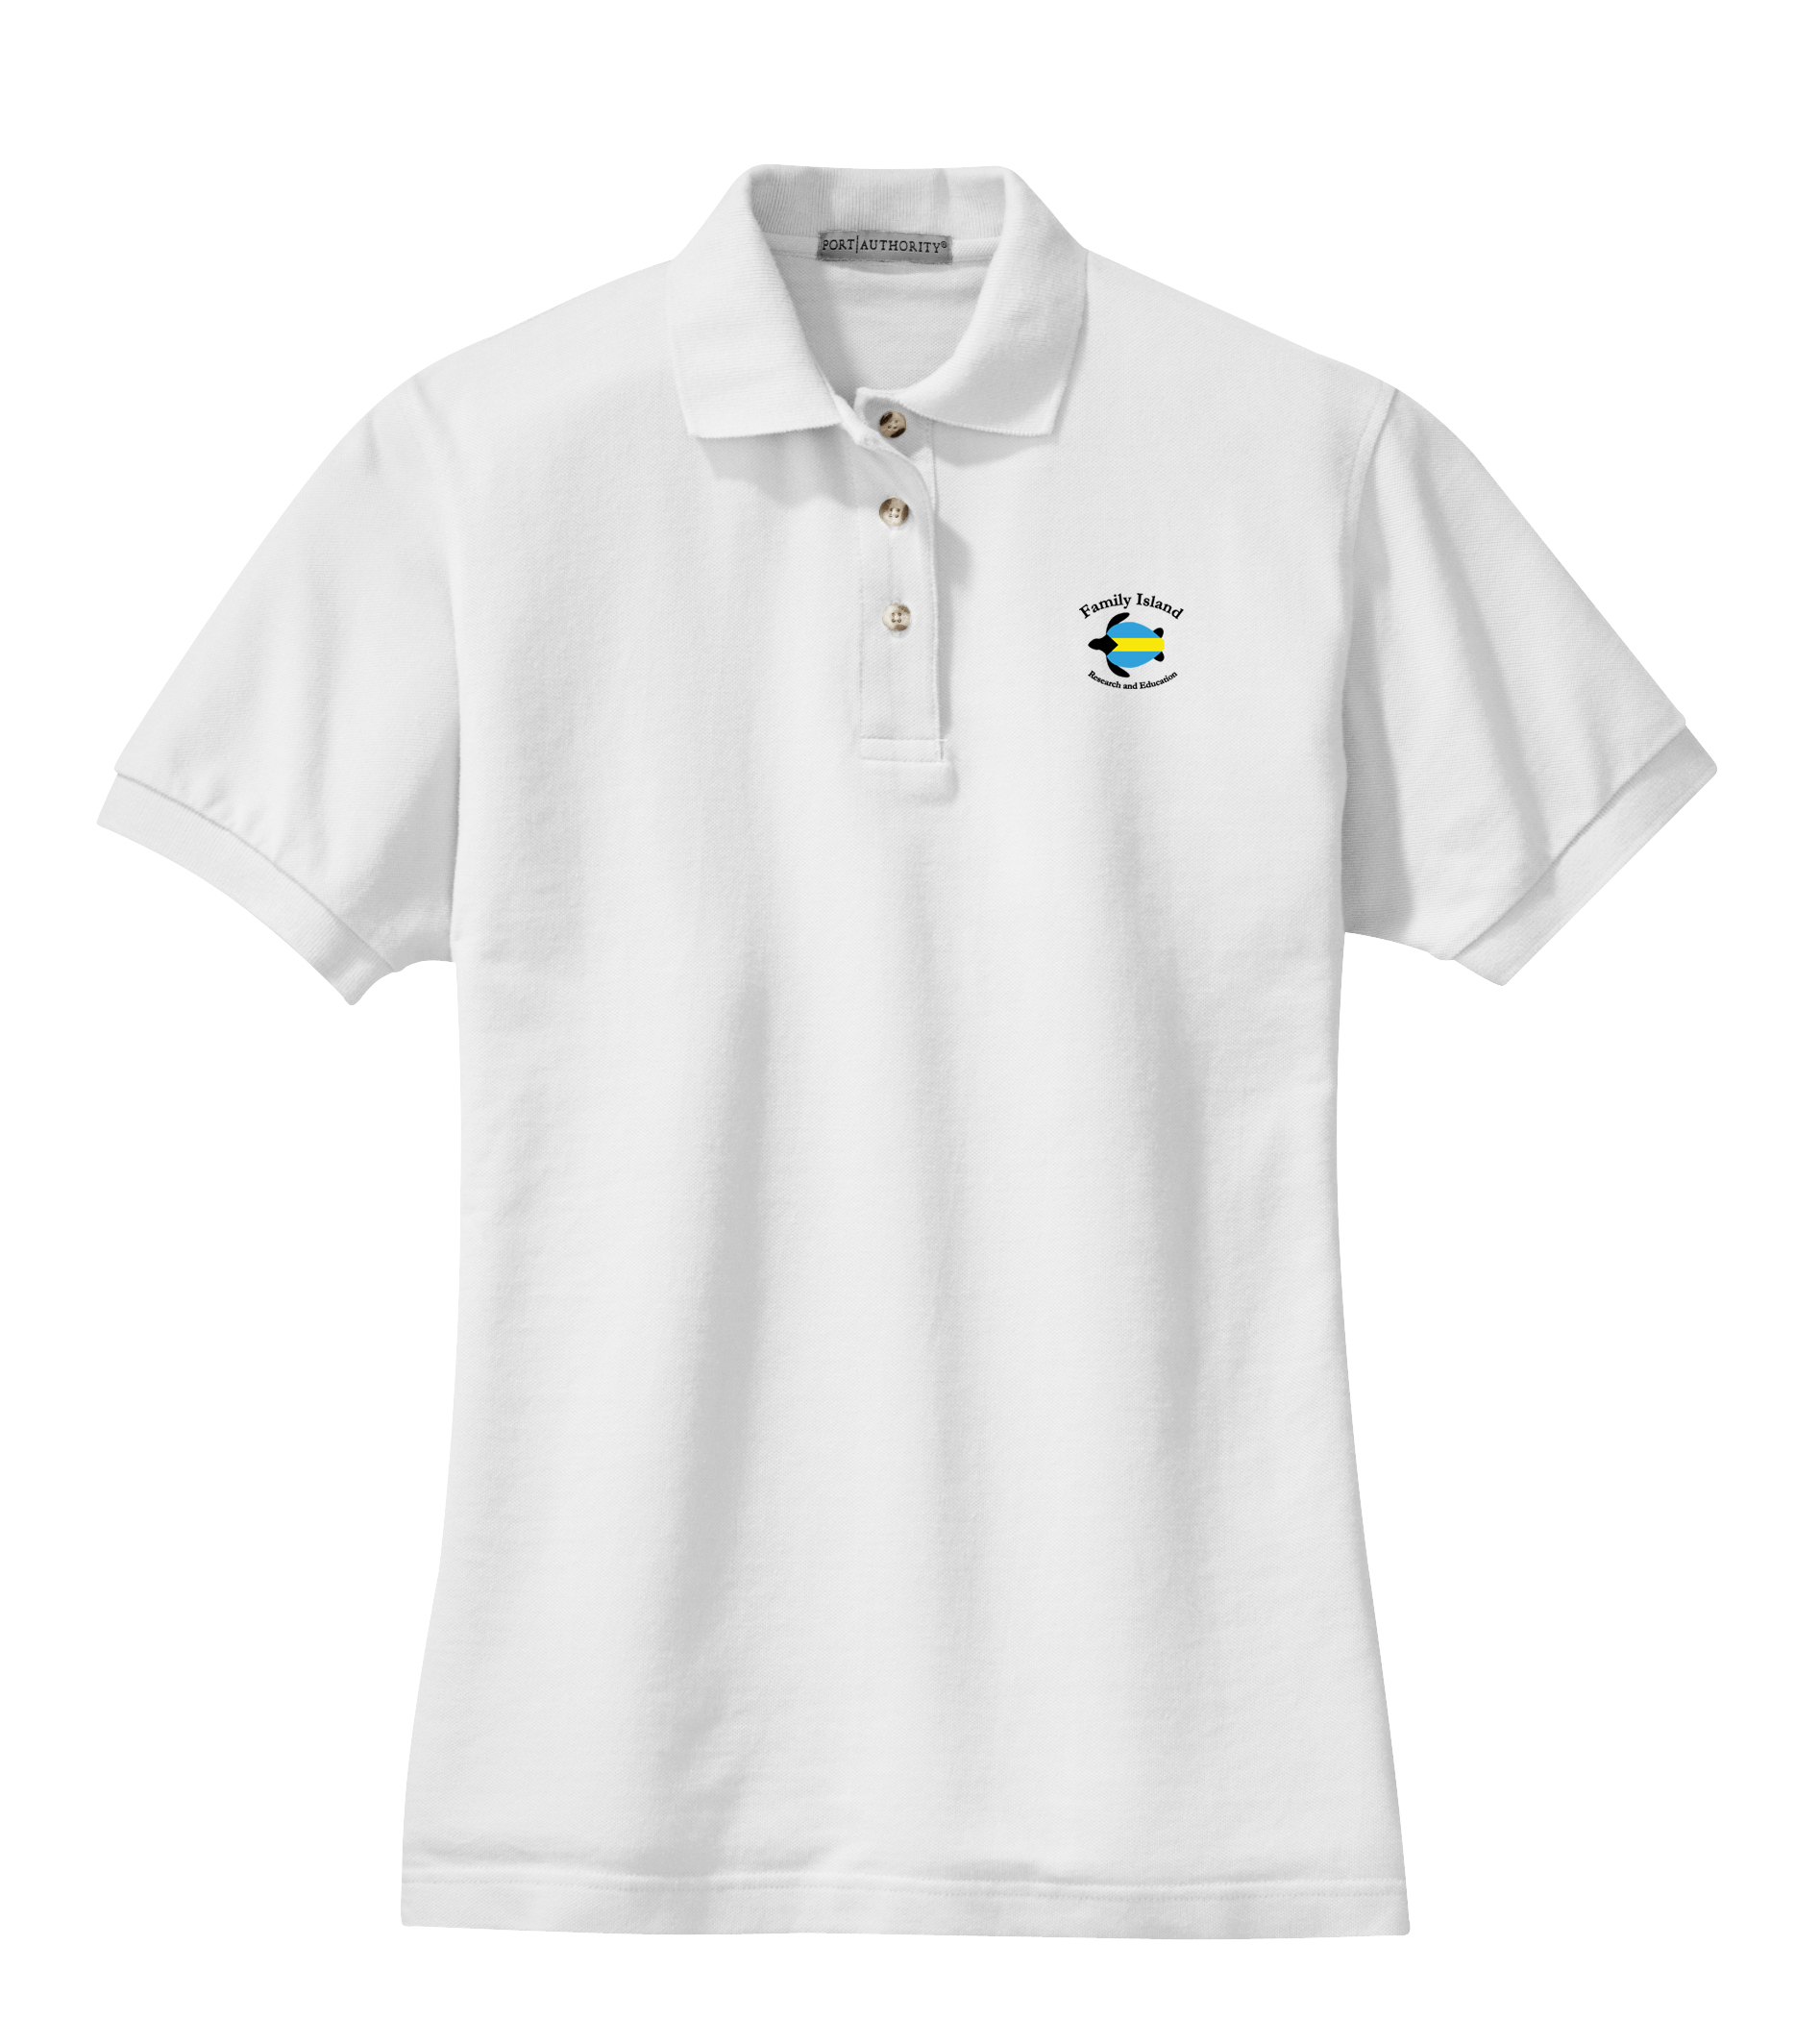 BAHAMAS SEA TURTLE RESEARCH WOMEN'S COTTON POLO